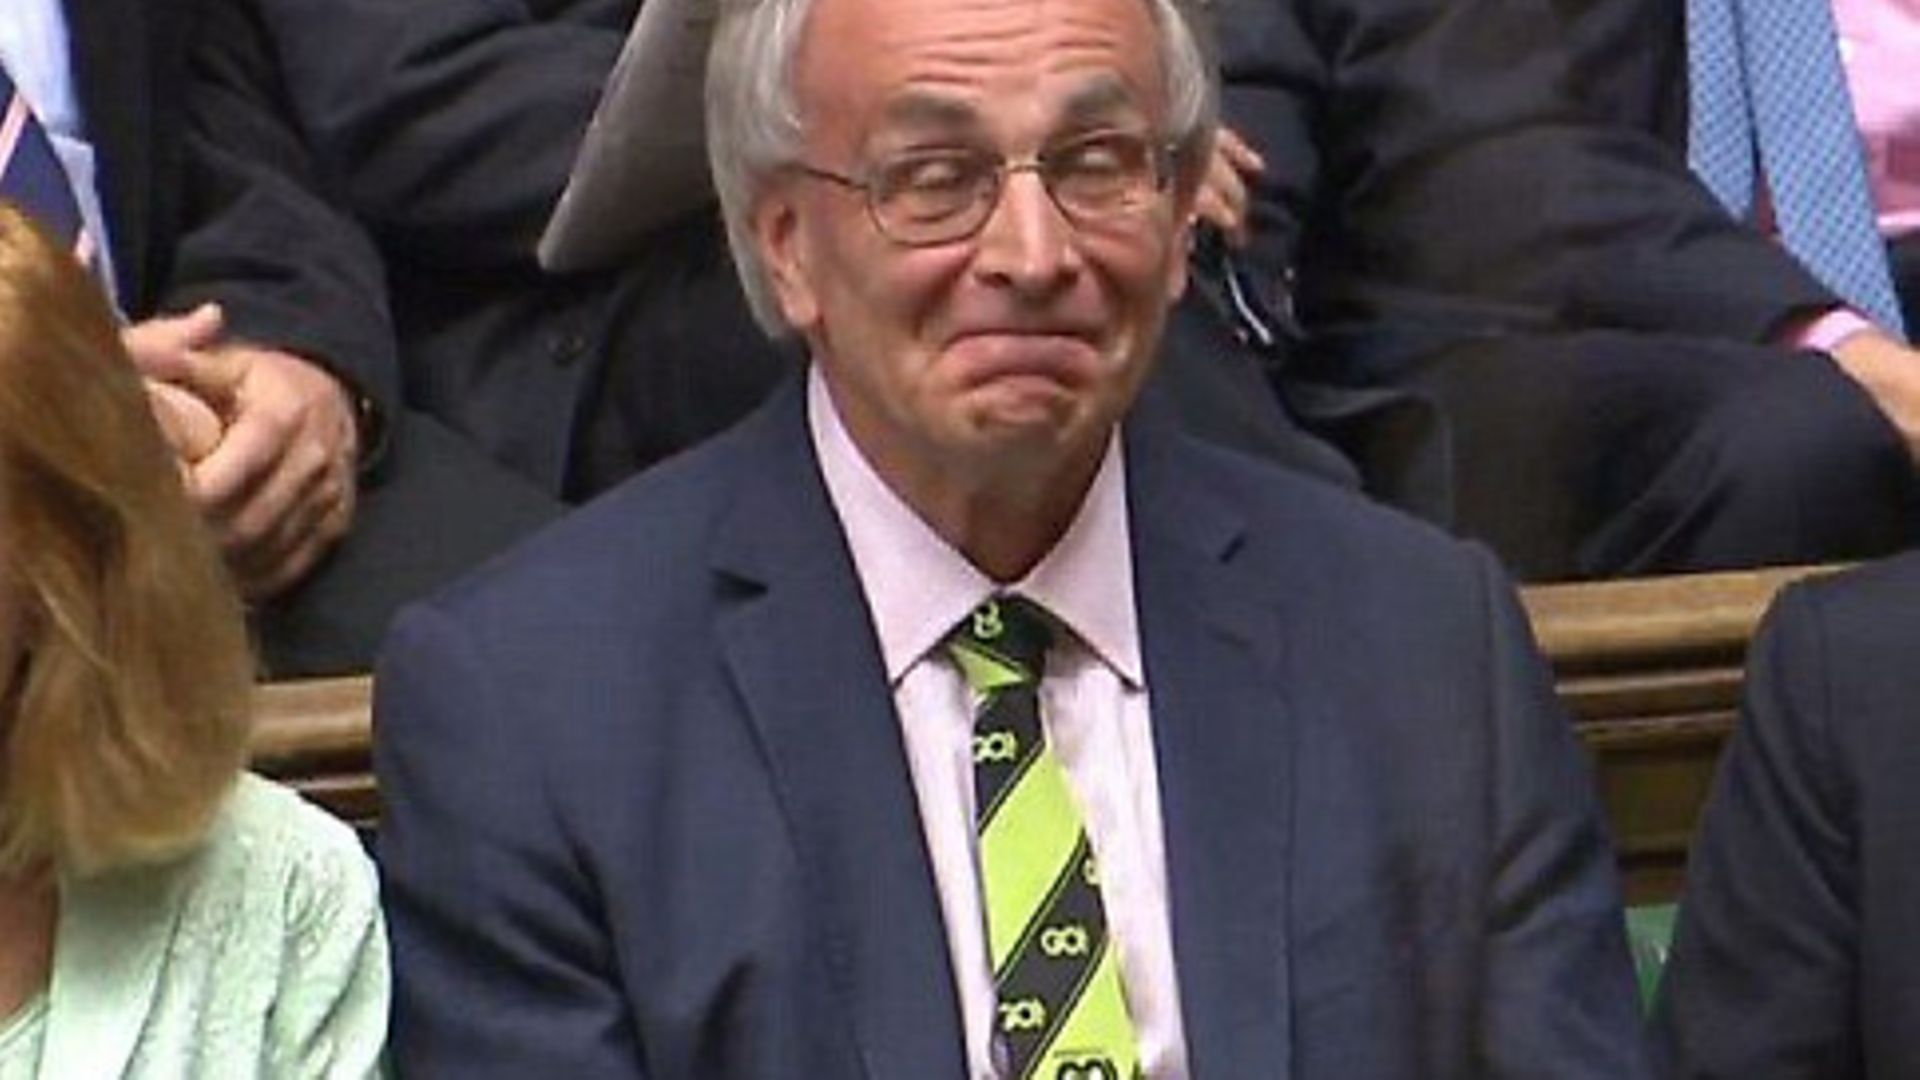 Peter Bone MP in the House of Commons - Credit: Parliament Live